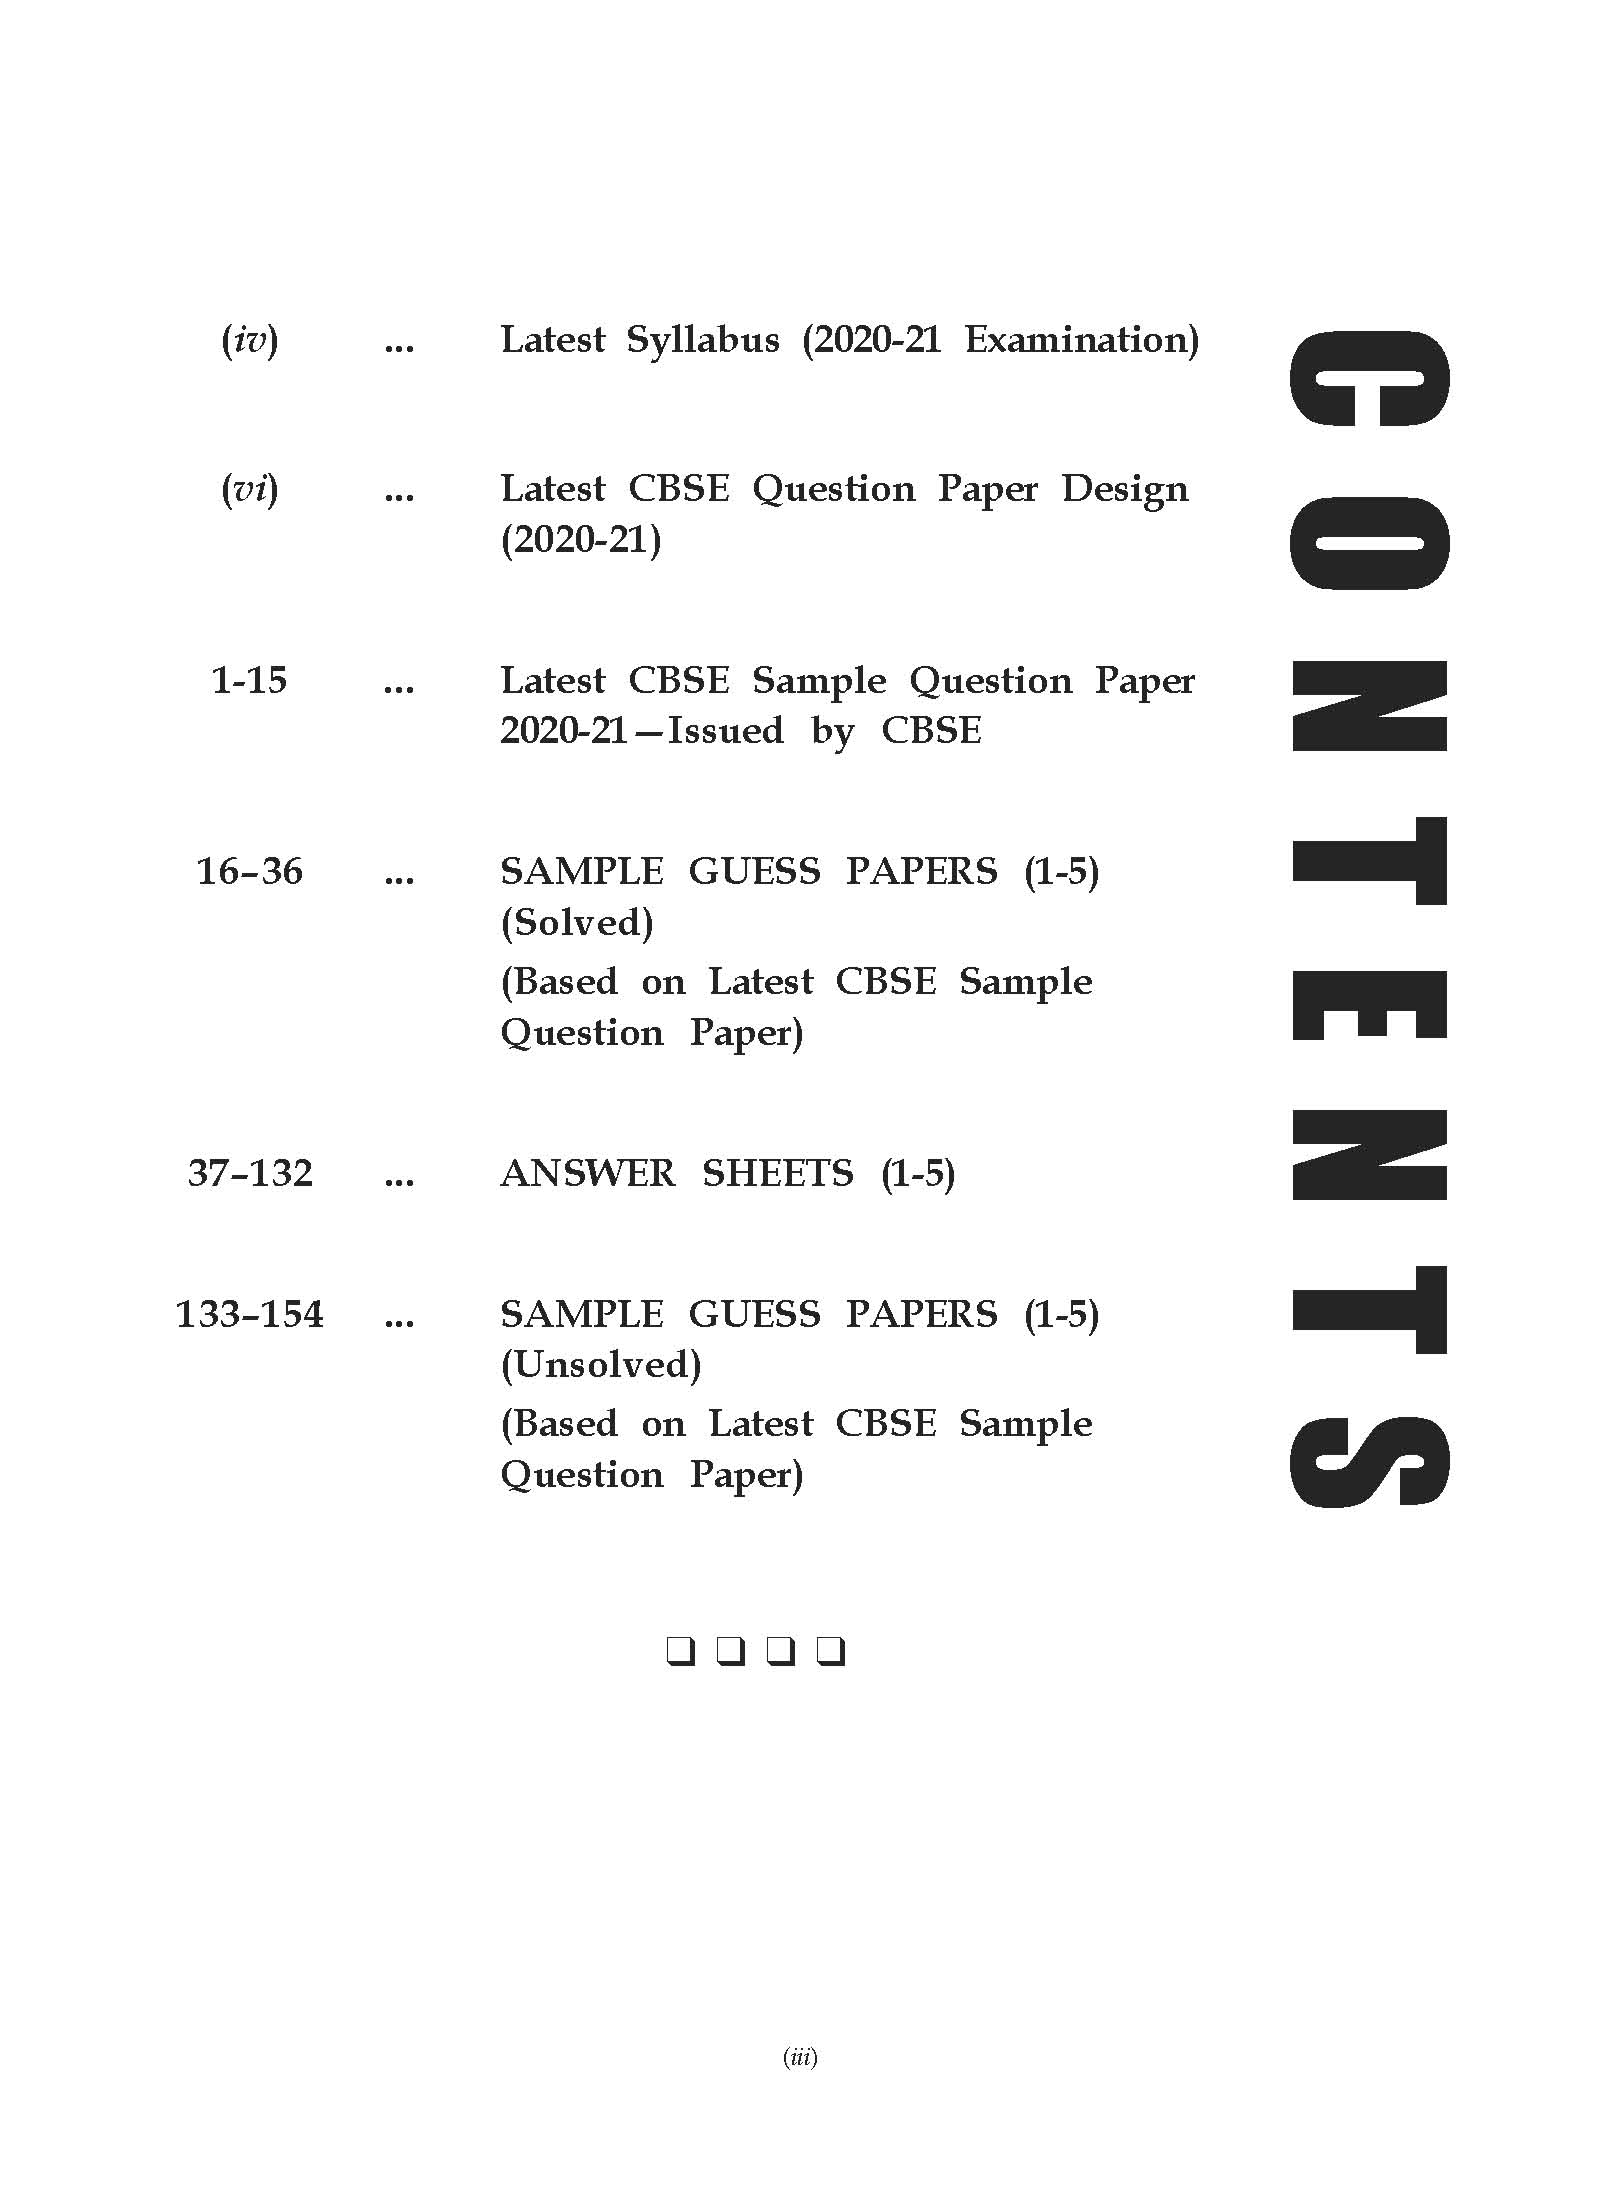 CBSE 2021 Pattern HI SCORE Board Sample Guess Papers for Class 12 Mathematics